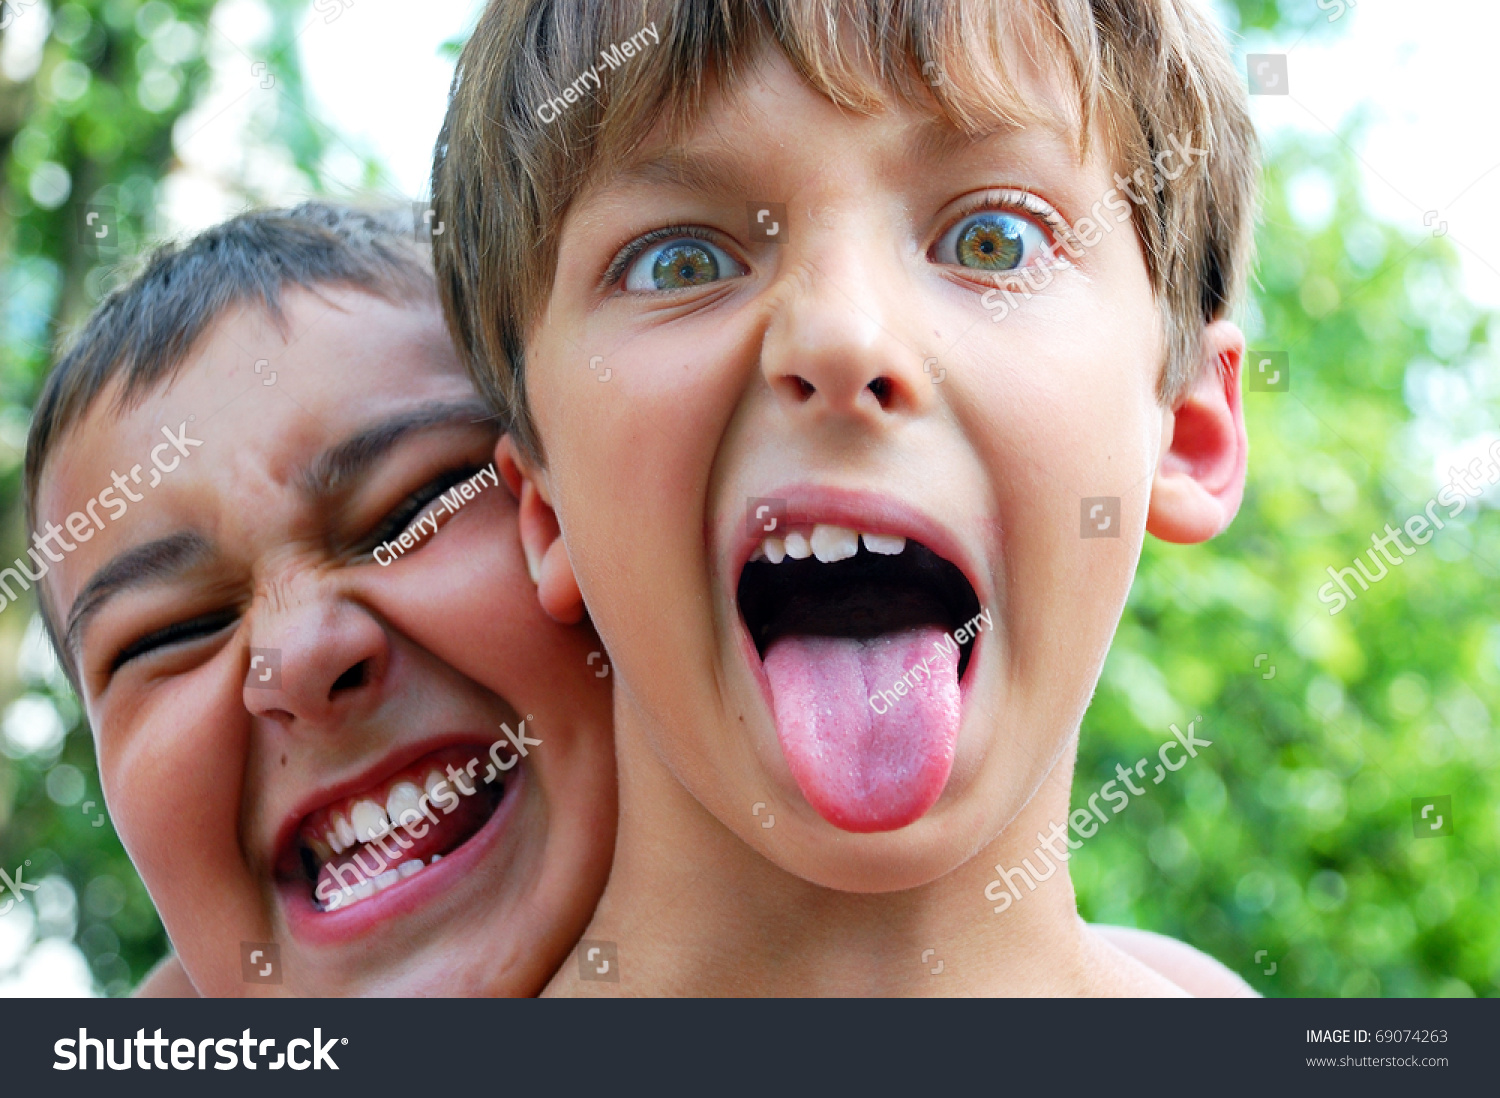 Two Cute Boys Making Crazy Faces Stock Photo